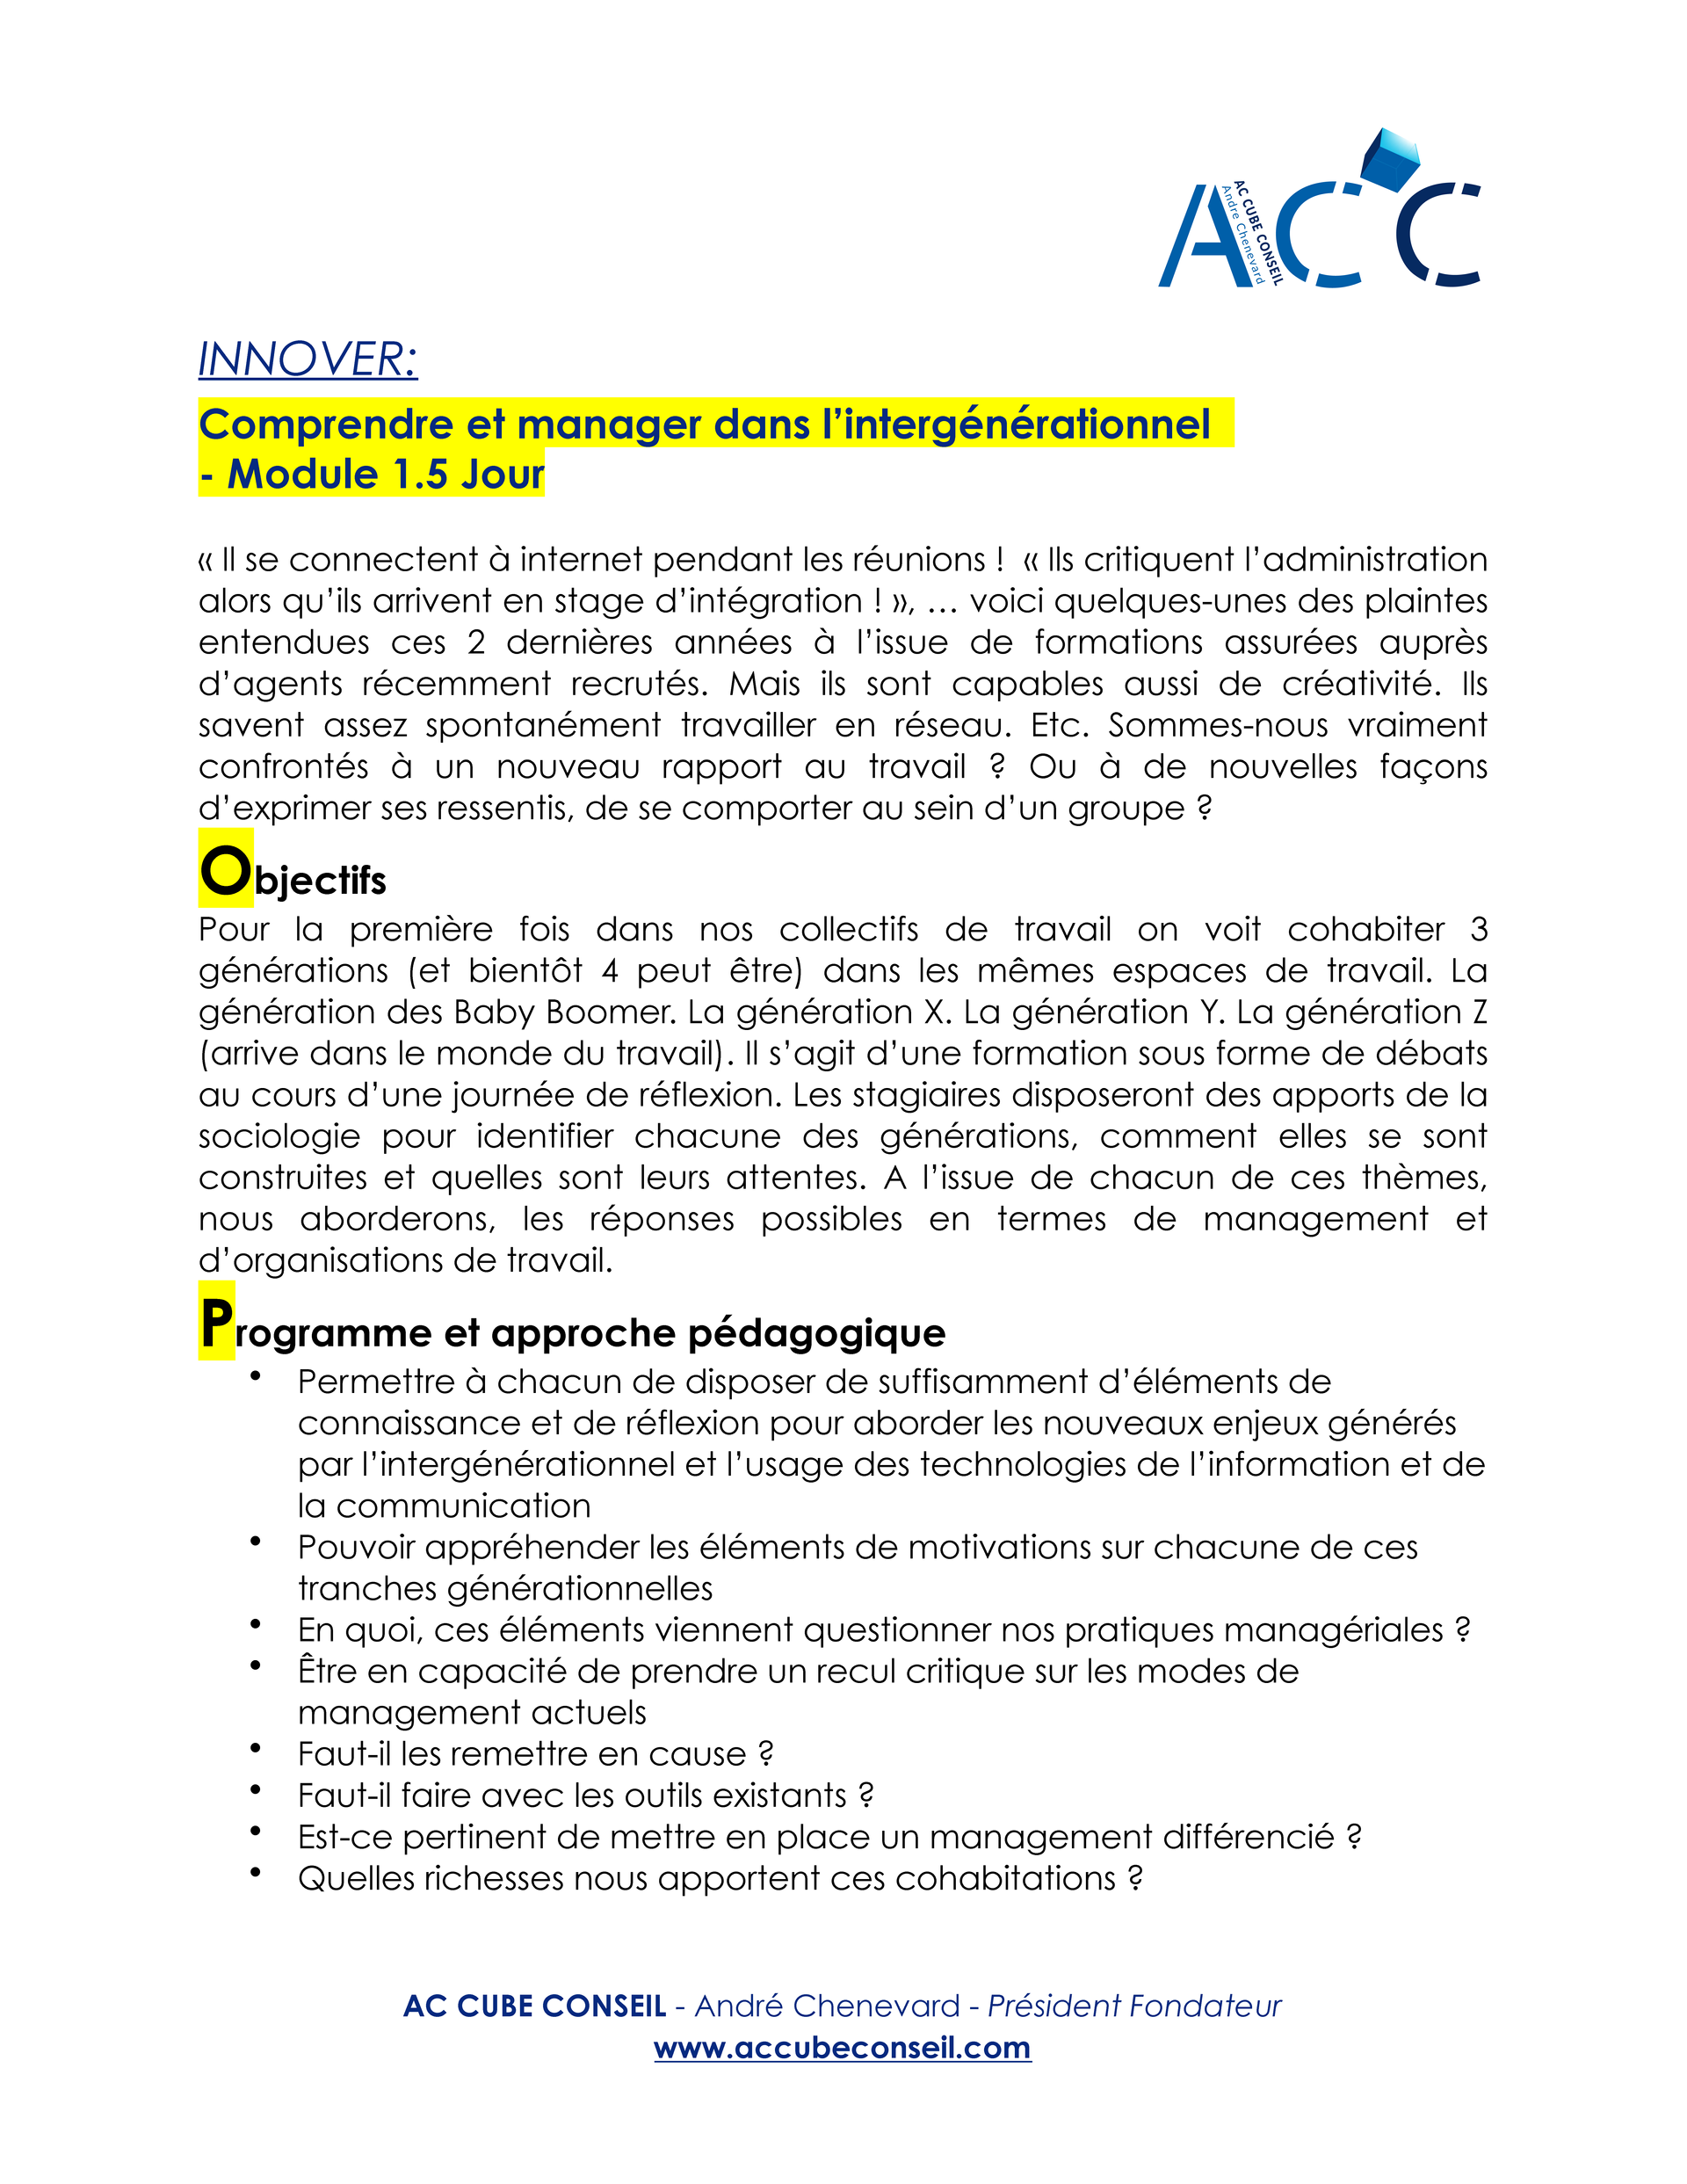 AC CUBE CONSEIL - INNOVER_Page_03.png